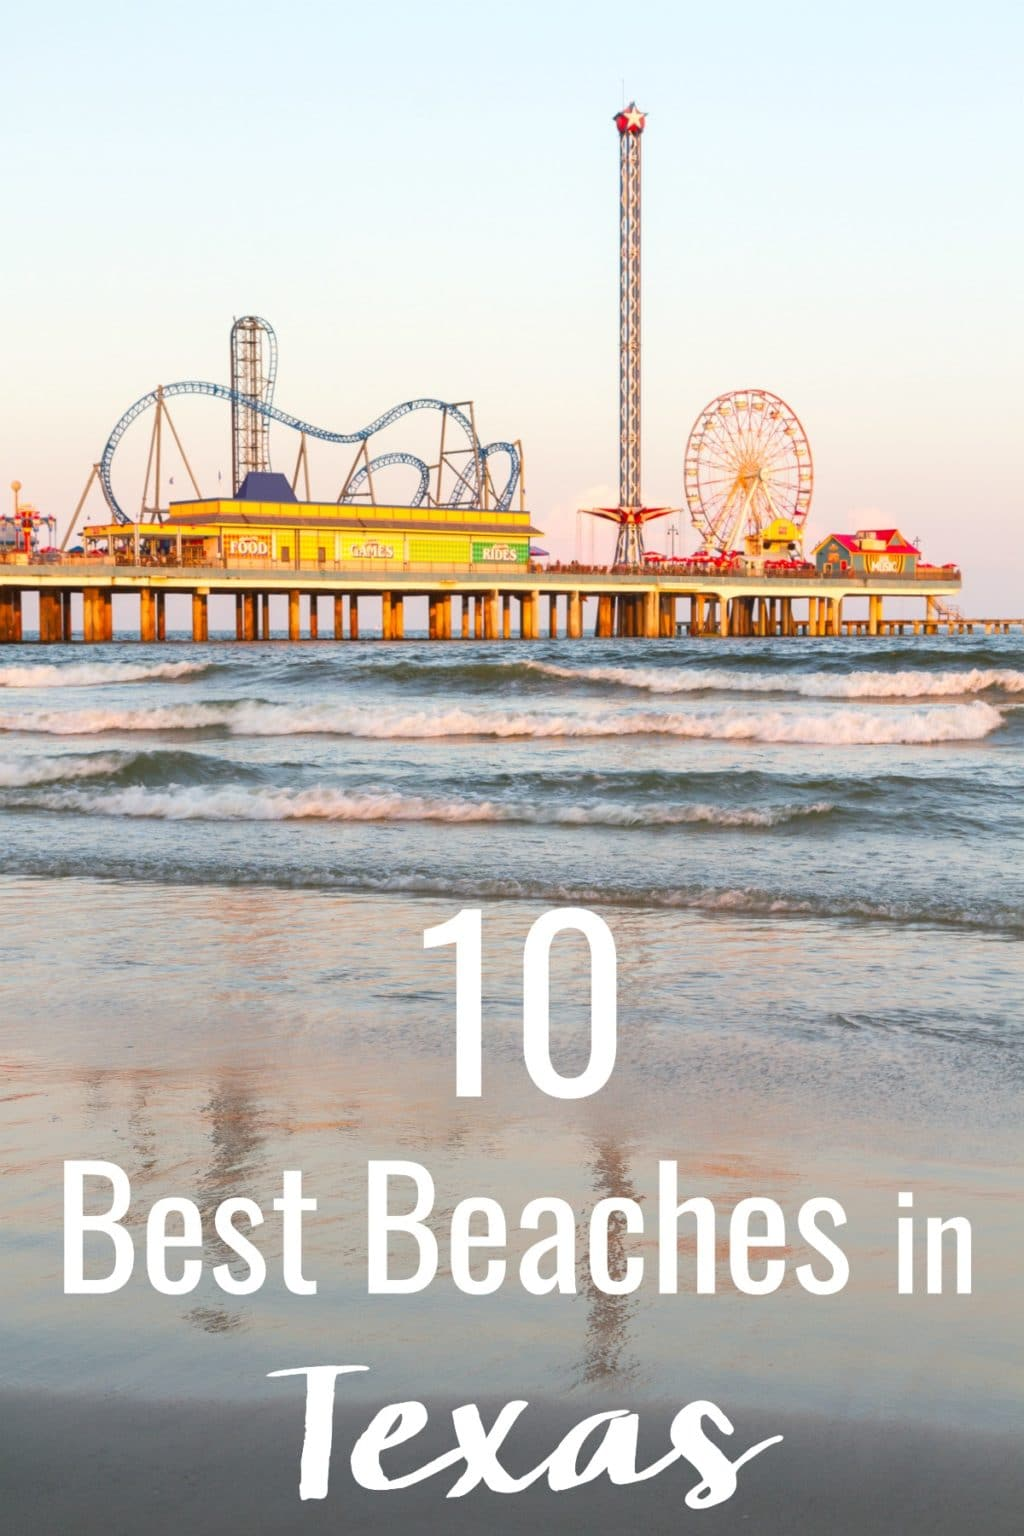 Texas is a big state, so there's never a shortage of things to do. When you're ready to head to the coast, check out this list of the 10 Best Beaches in Texas to find the perfect slice of sun and sand for you!